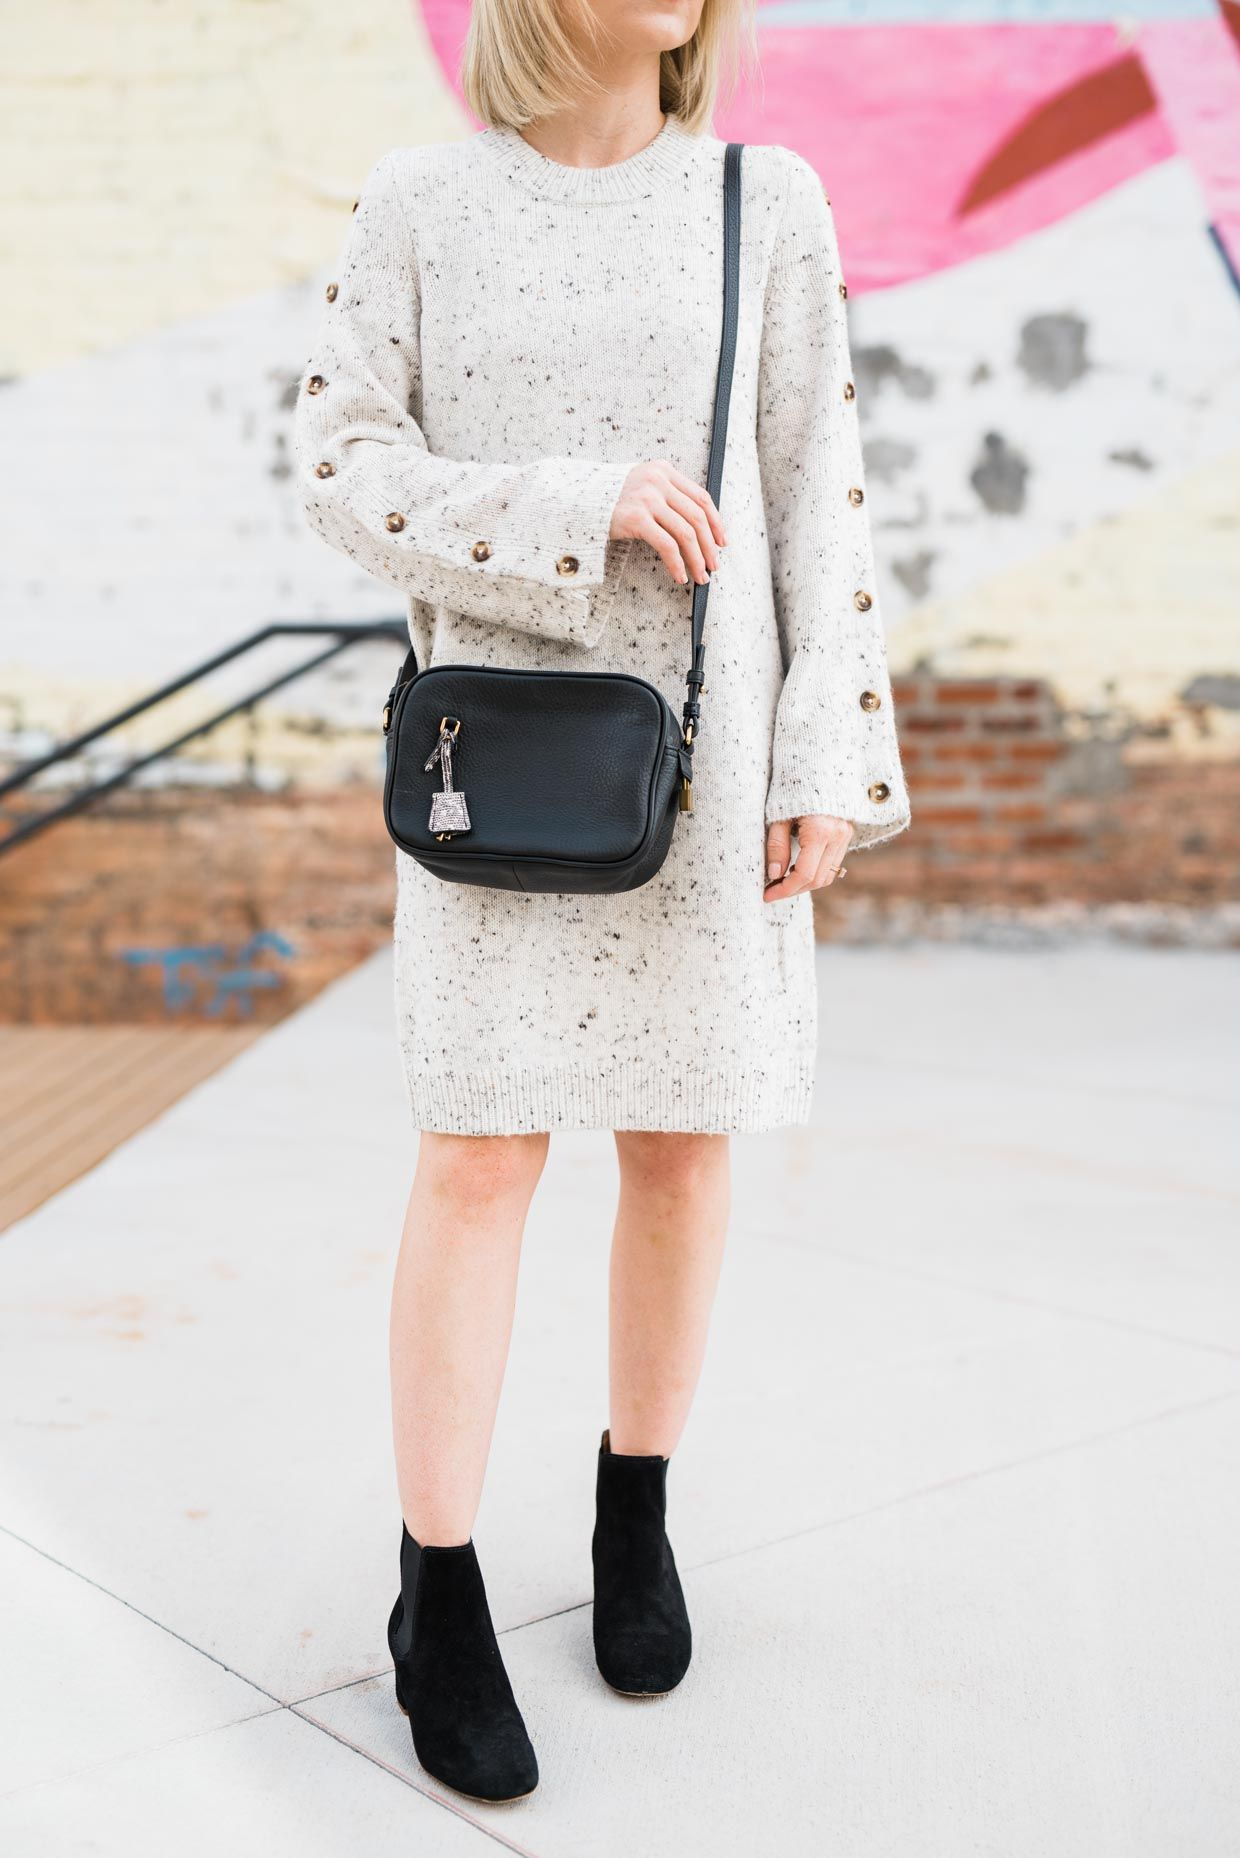 How To Wear A Sweater Dress With Boots Poor Little It Girl Dress With Boots Outfit Inspiration Fall Autumn Winter Fashion [ 1858 x 1240 Pixel ]